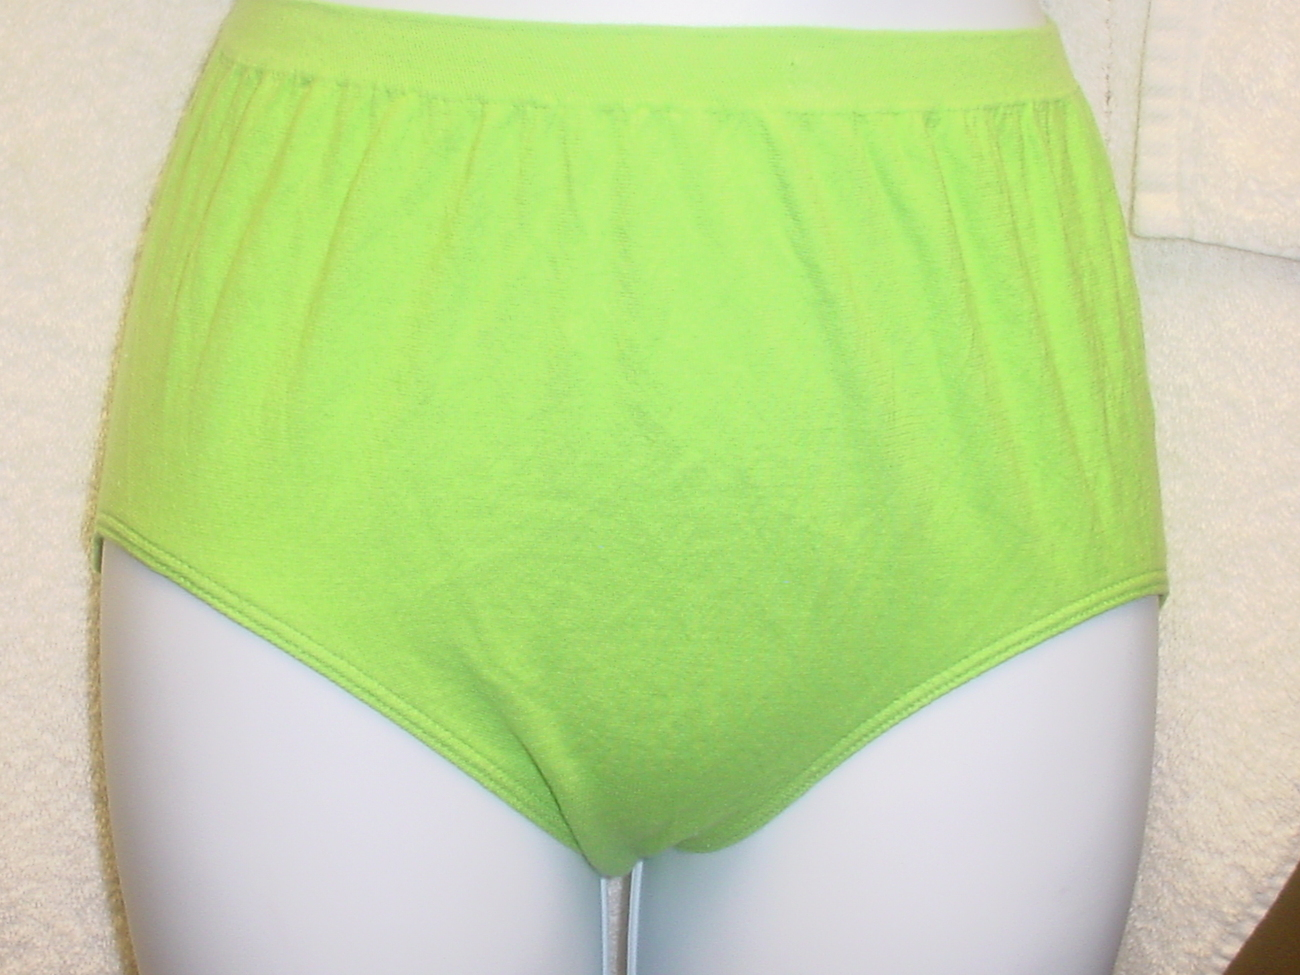 Jockey Seamfree Panty 6/Medium Green SP-Slightly Imperfect Lot of 3 NWOT